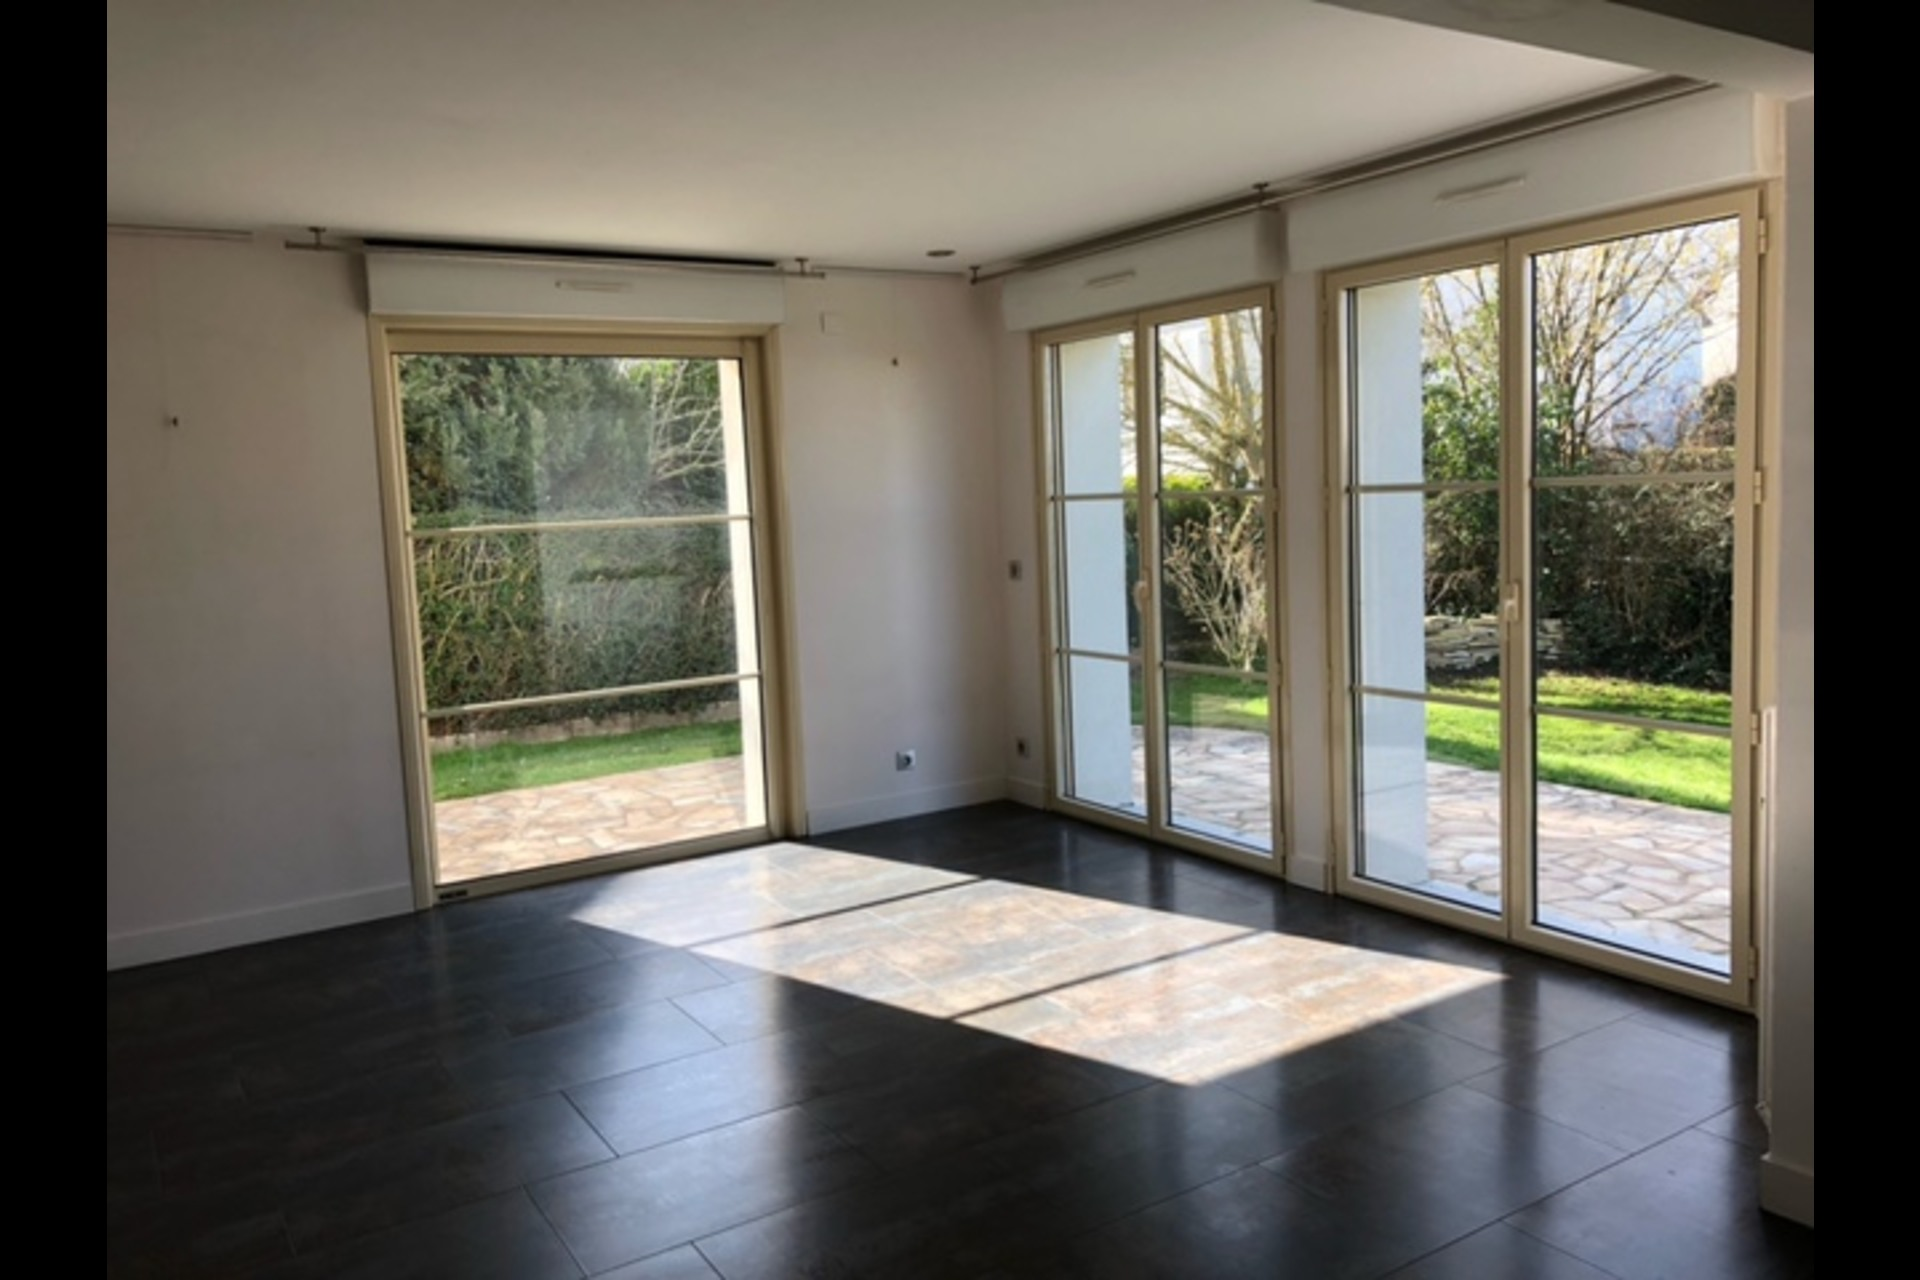 image 2 - House For sale chambourcy - 6 rooms